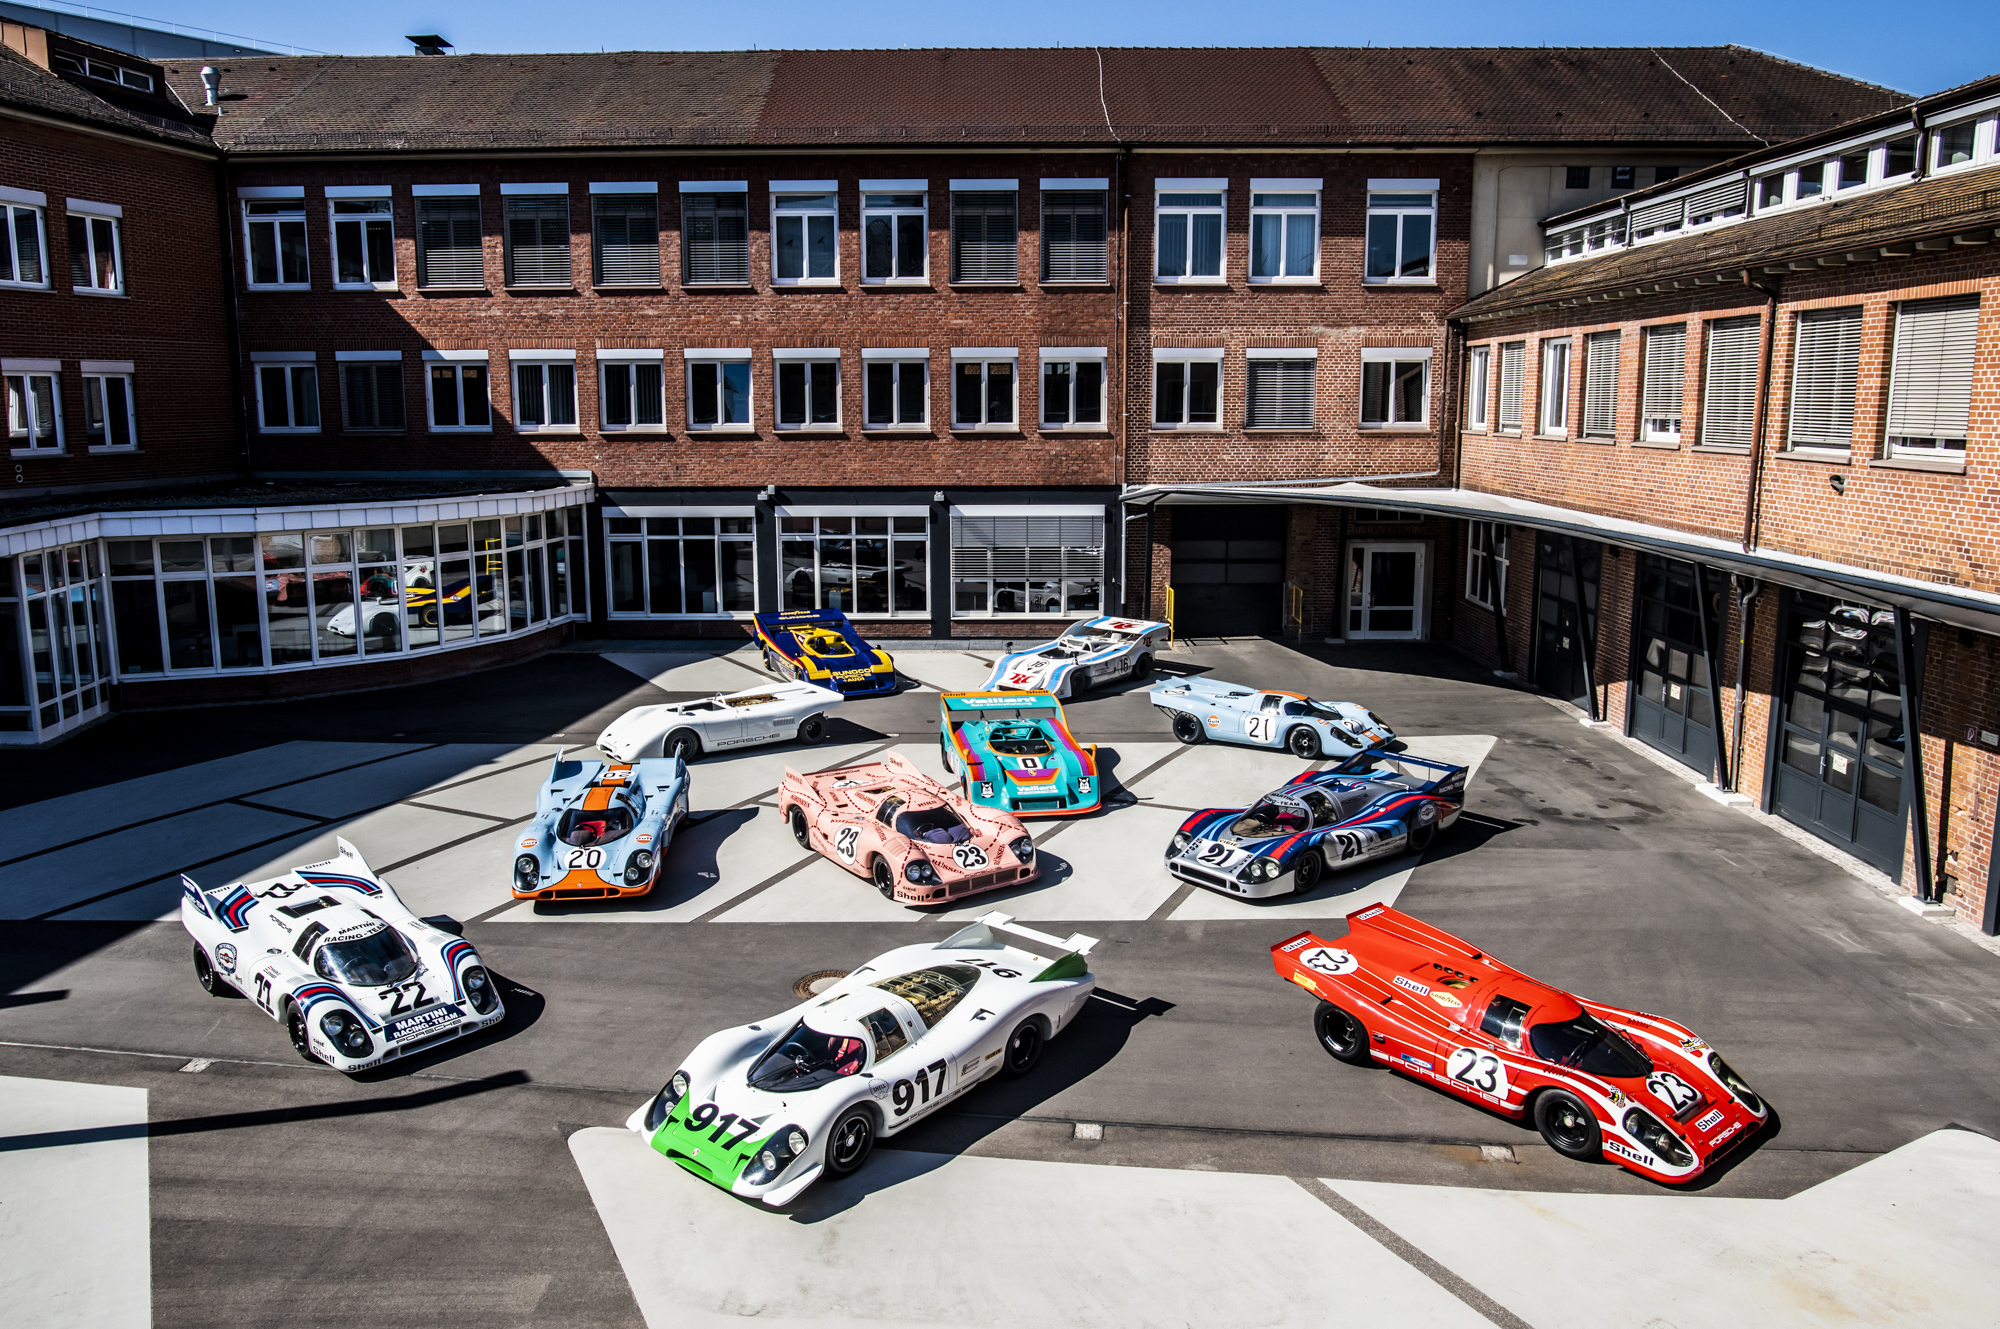 The Porsche Museum has set up a special anniversary exhibition to celebrate the 50th birthday of the Porsche 917 racecar